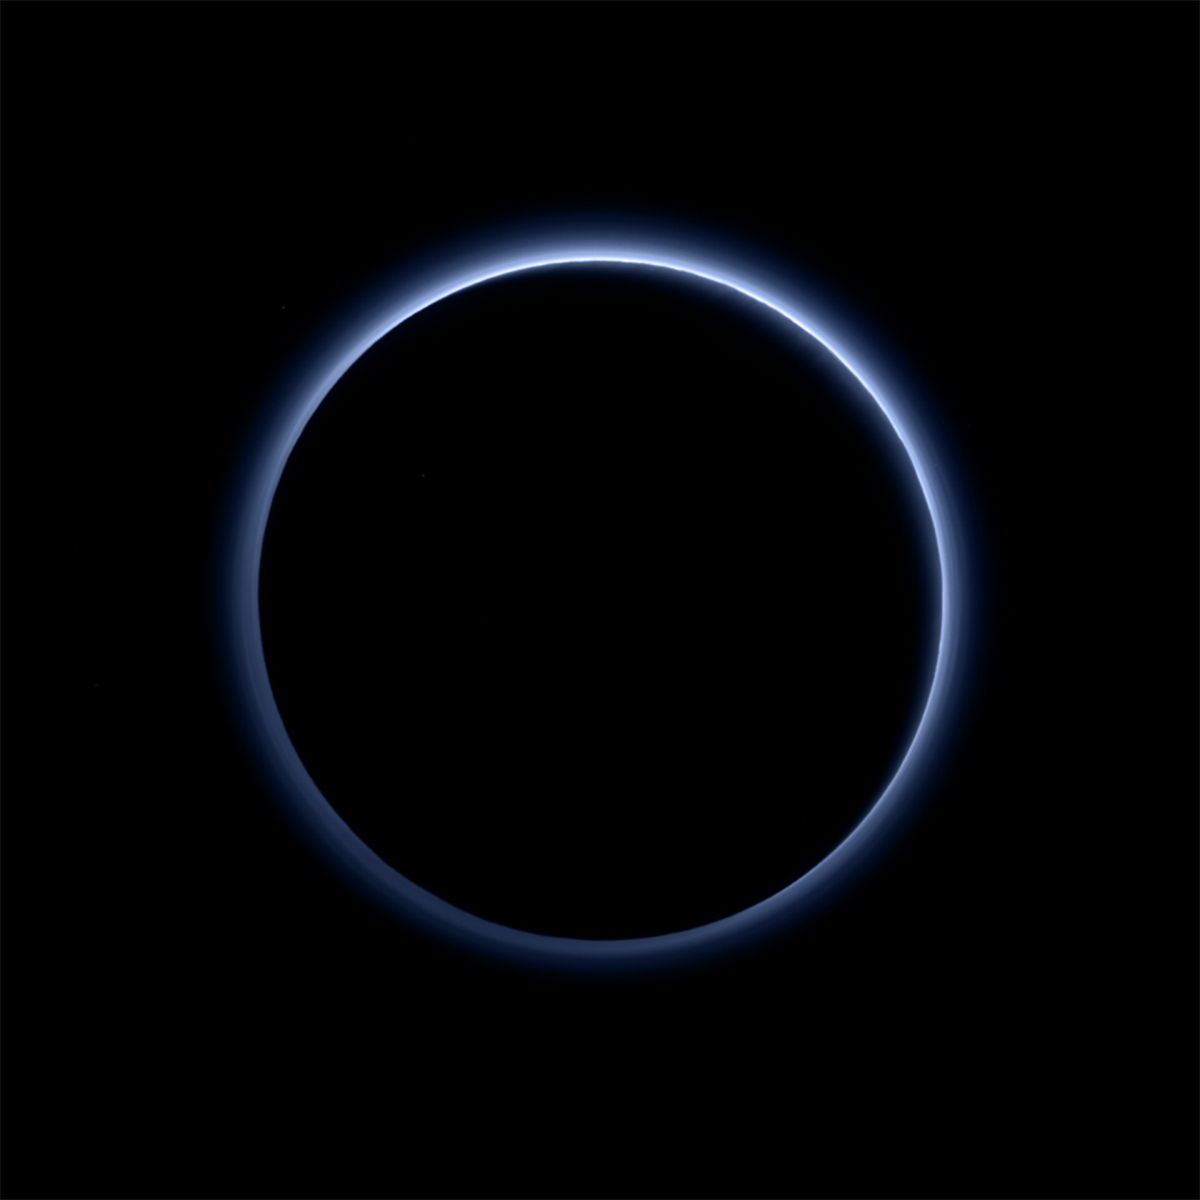 Pluto's haze layer shows its blue color in this picture taken by the New Horizons Ralph/Multispectral Visible Imaging Camera (MVIC). The high-altitude haze is thought to be similar in nature to that seen at Saturn's moon Titan. The source of both hazes likely involves sunlight-initiated chemical reactions of nitrogen and methane, leading to relatively small, soot-like particles (called tholins) that grow as they settle toward the surface. This image was generated by software that combines information from blue, red and near-infrared images to replicate the color a human eye would perceive as closely as possible. Credit: NASA/JHUAPL/SWRI